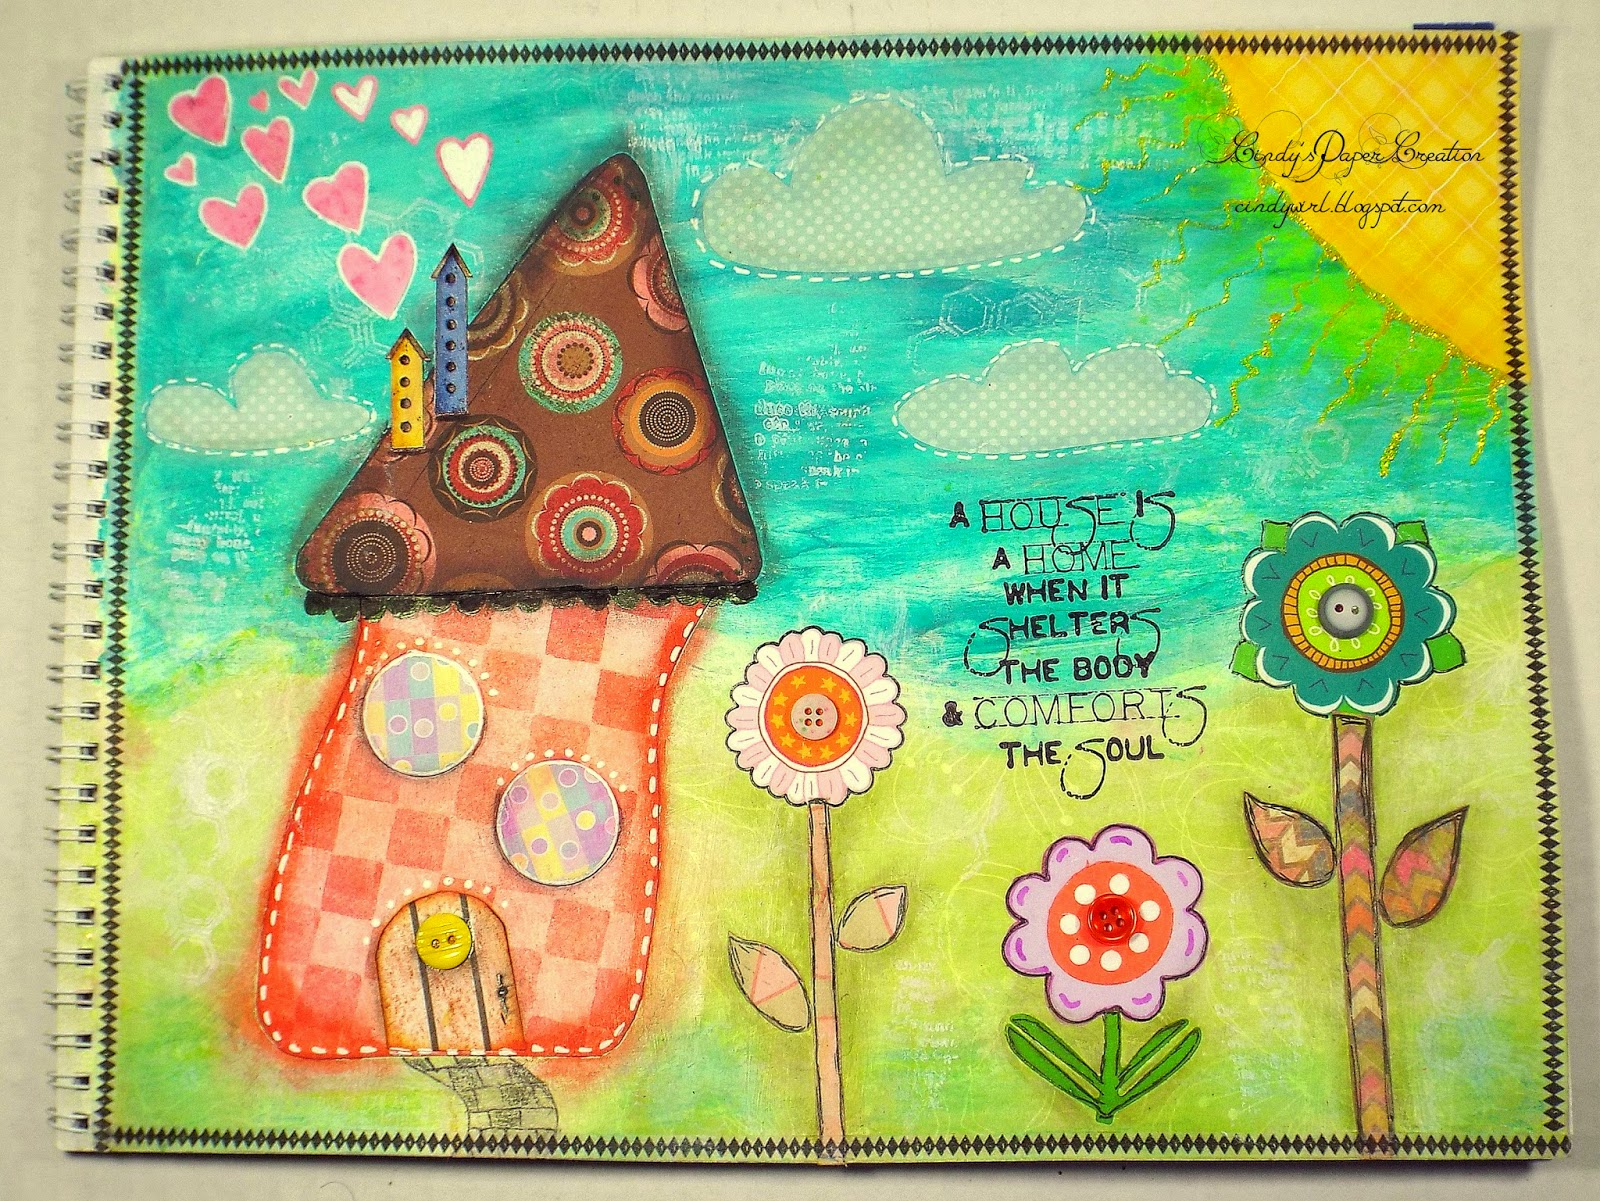 Mixed Media House by cindywirl.blogspot.com